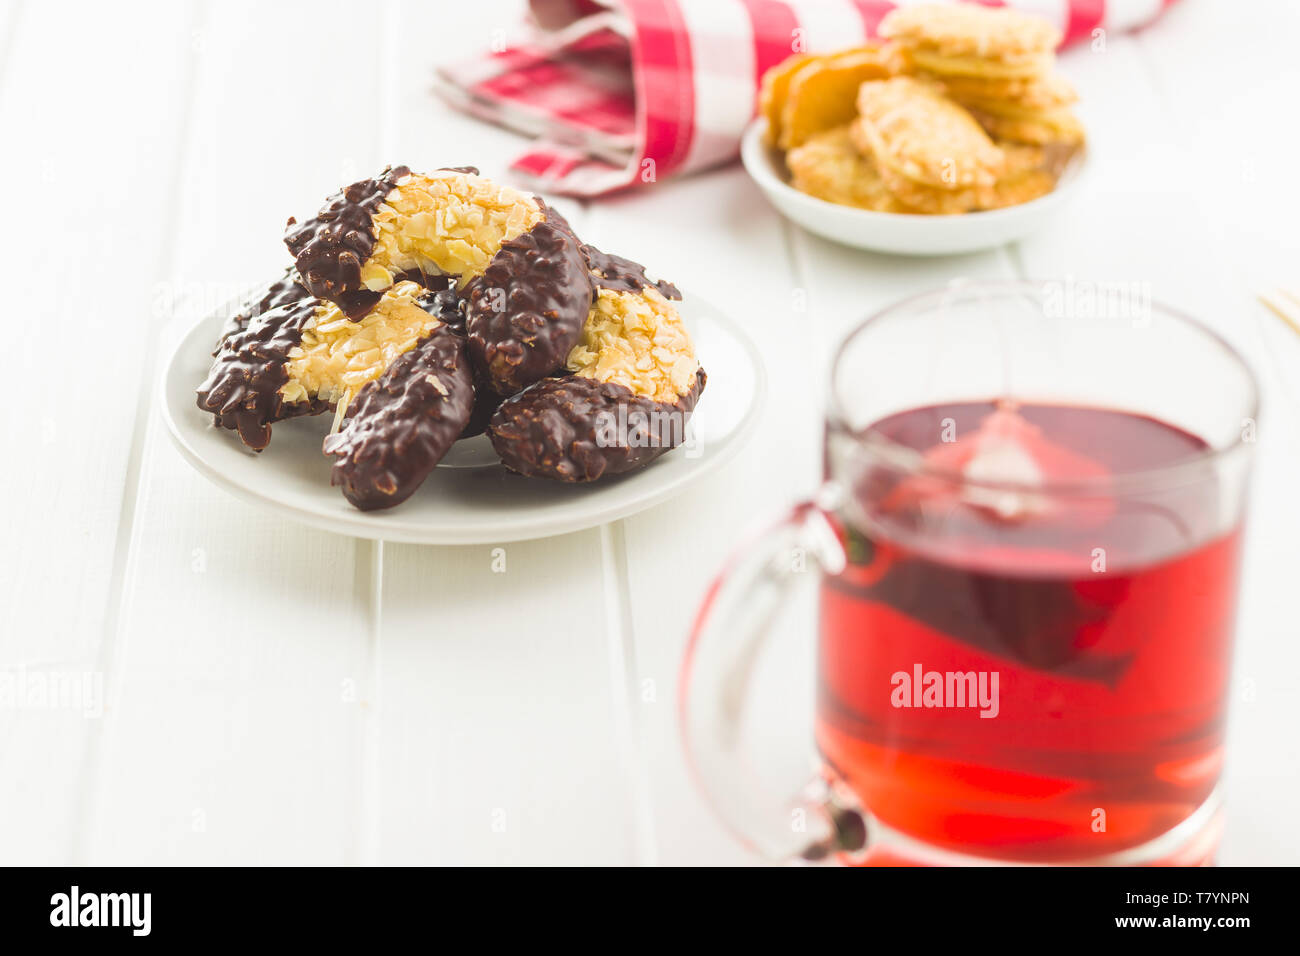 Sweet biscuits dessert on white table. - Stock Image